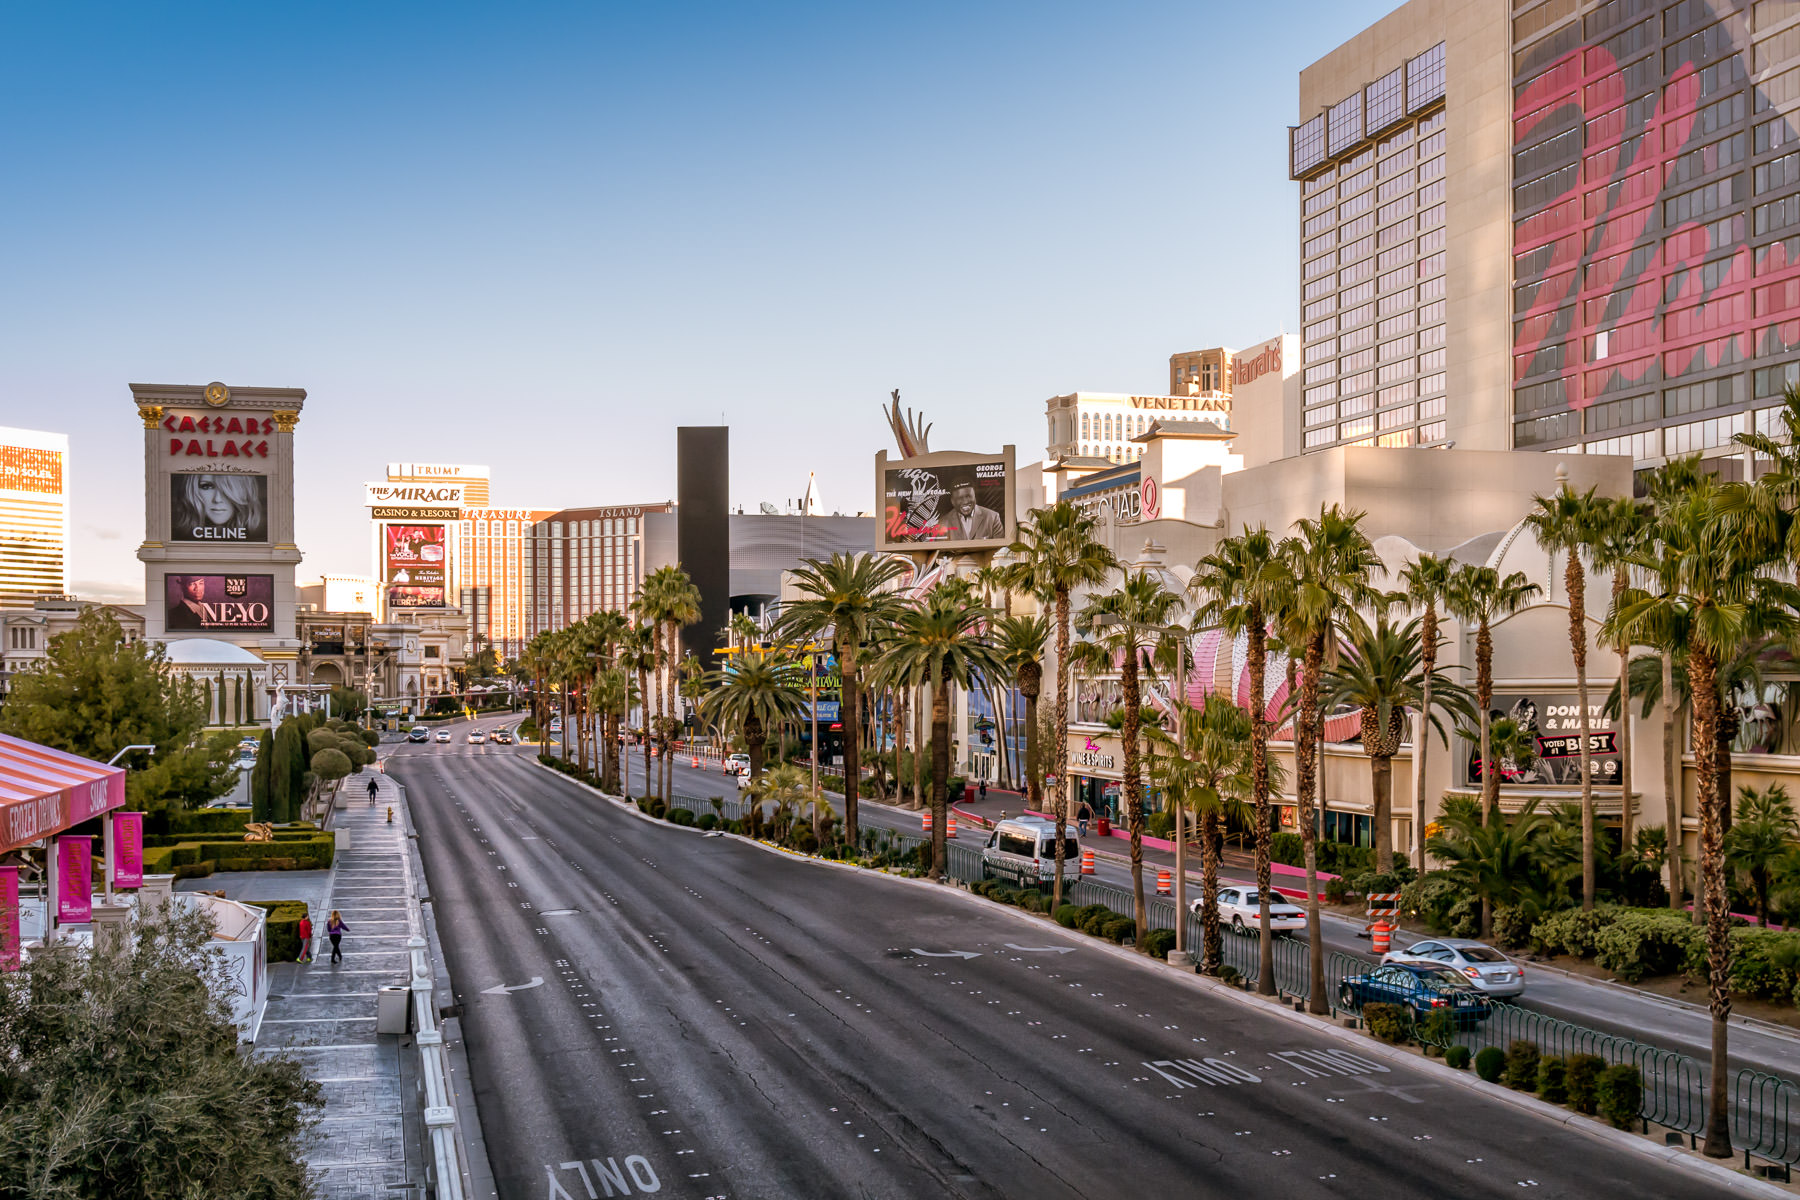 The Strip begins to come to life as the sun rises on Las Vegas.